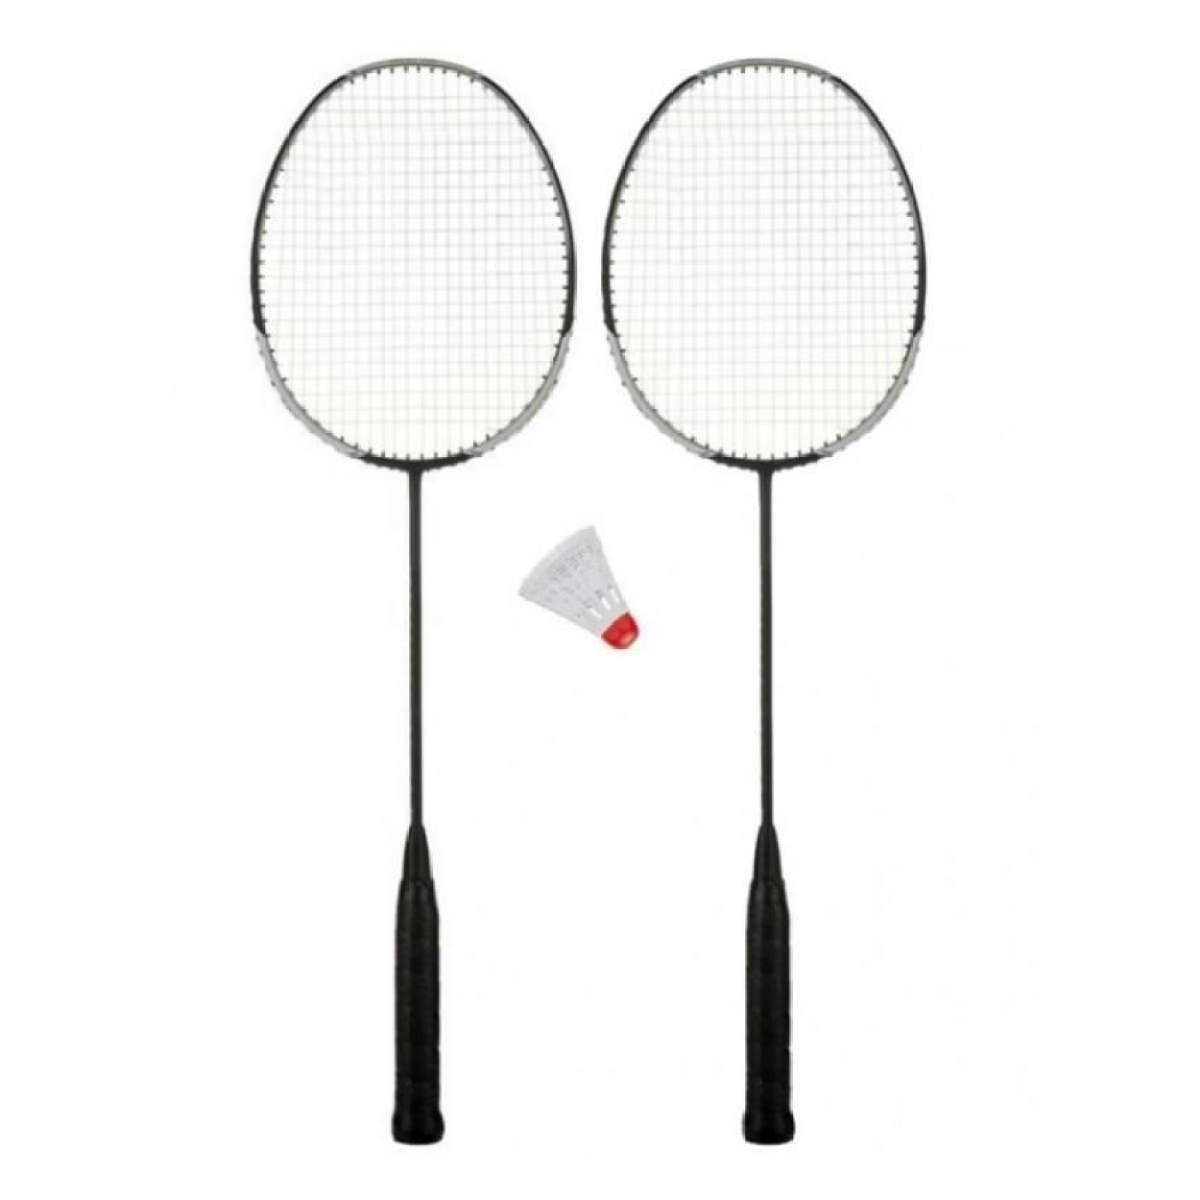 Pack of 2 Badminton Rackets with free shuttle for outdoor sports